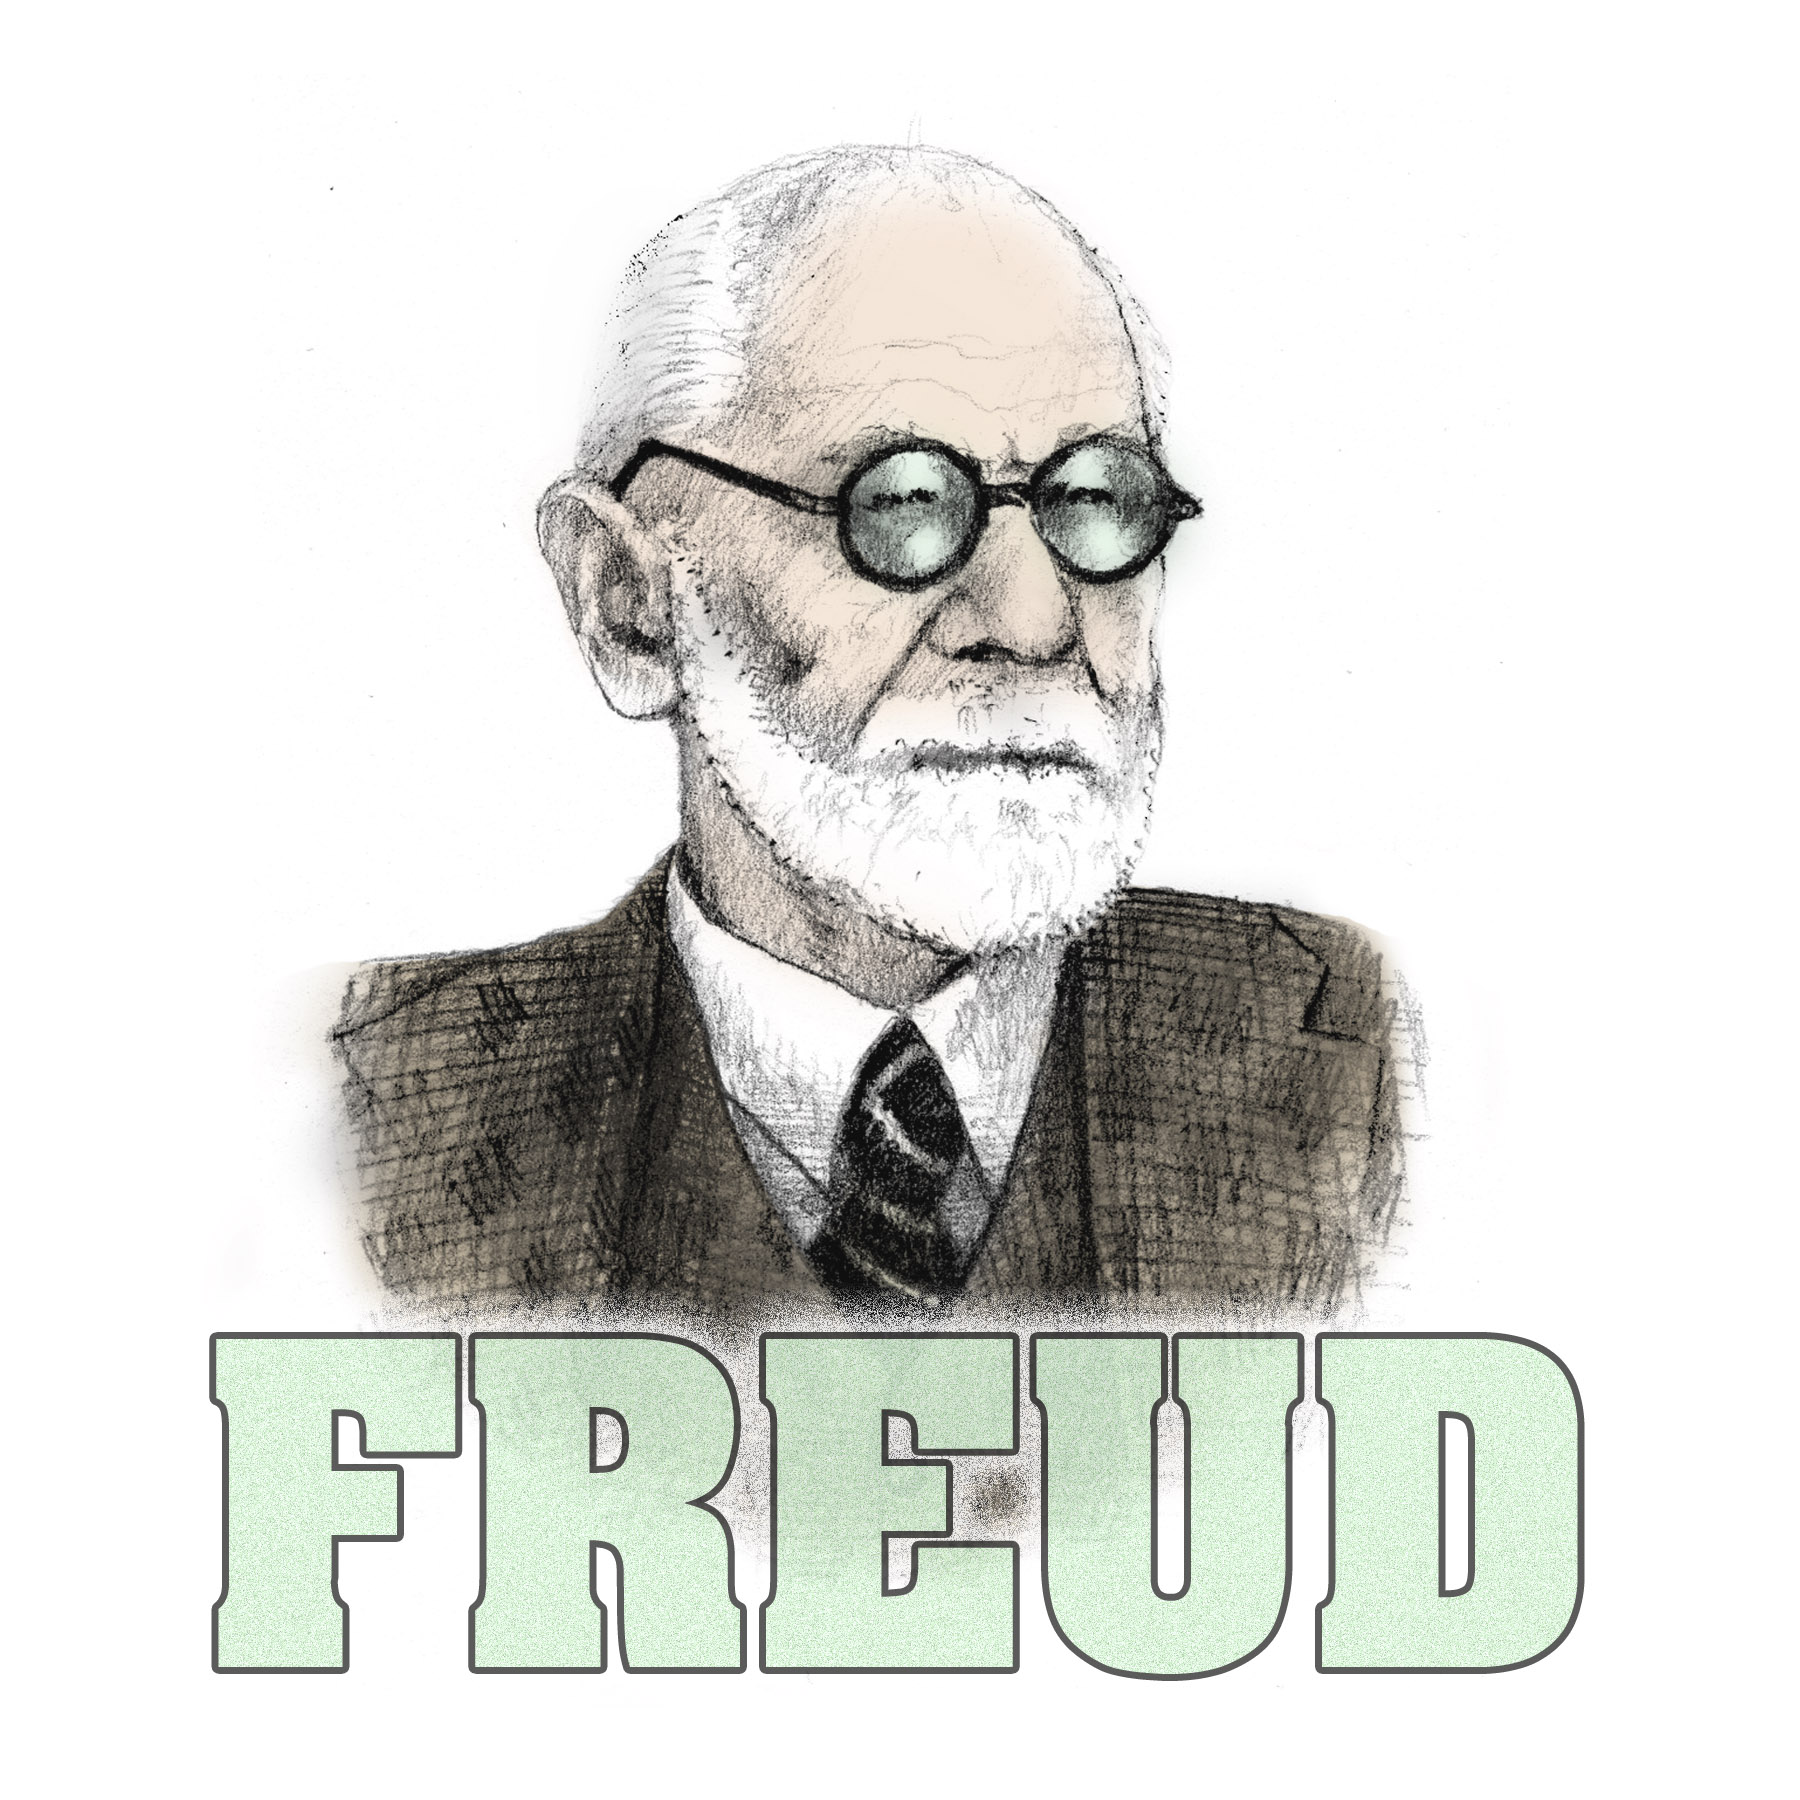 an introduction to the analysis of freud and dreams An introduction to freudian psychoanalytic therapy english literature free association and dream analysis in the interpretation of dreams freud said that.